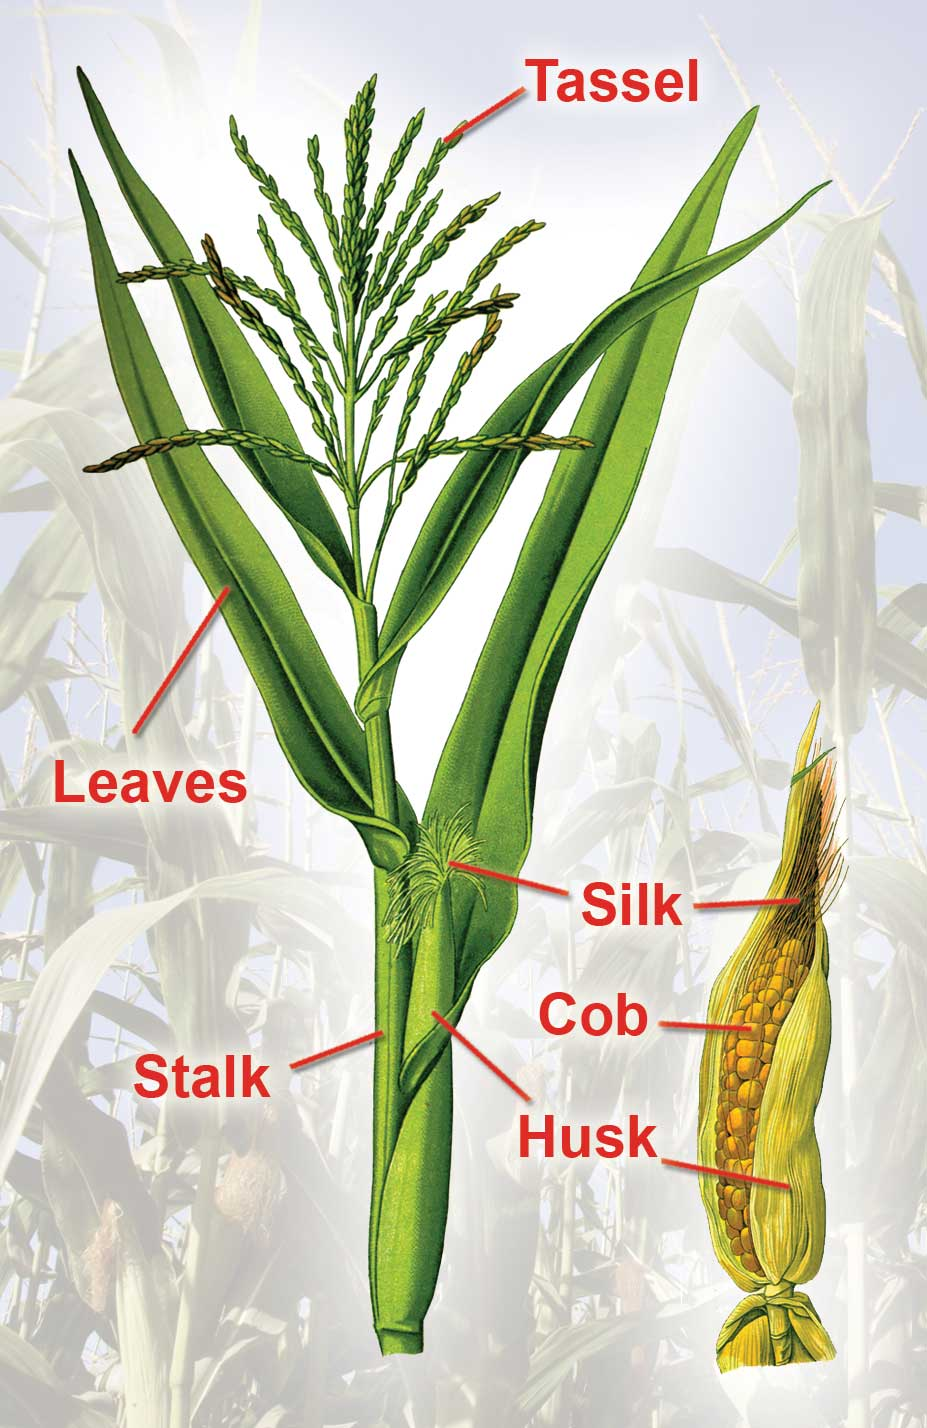 Figure 92. Parts of a Corn Plant